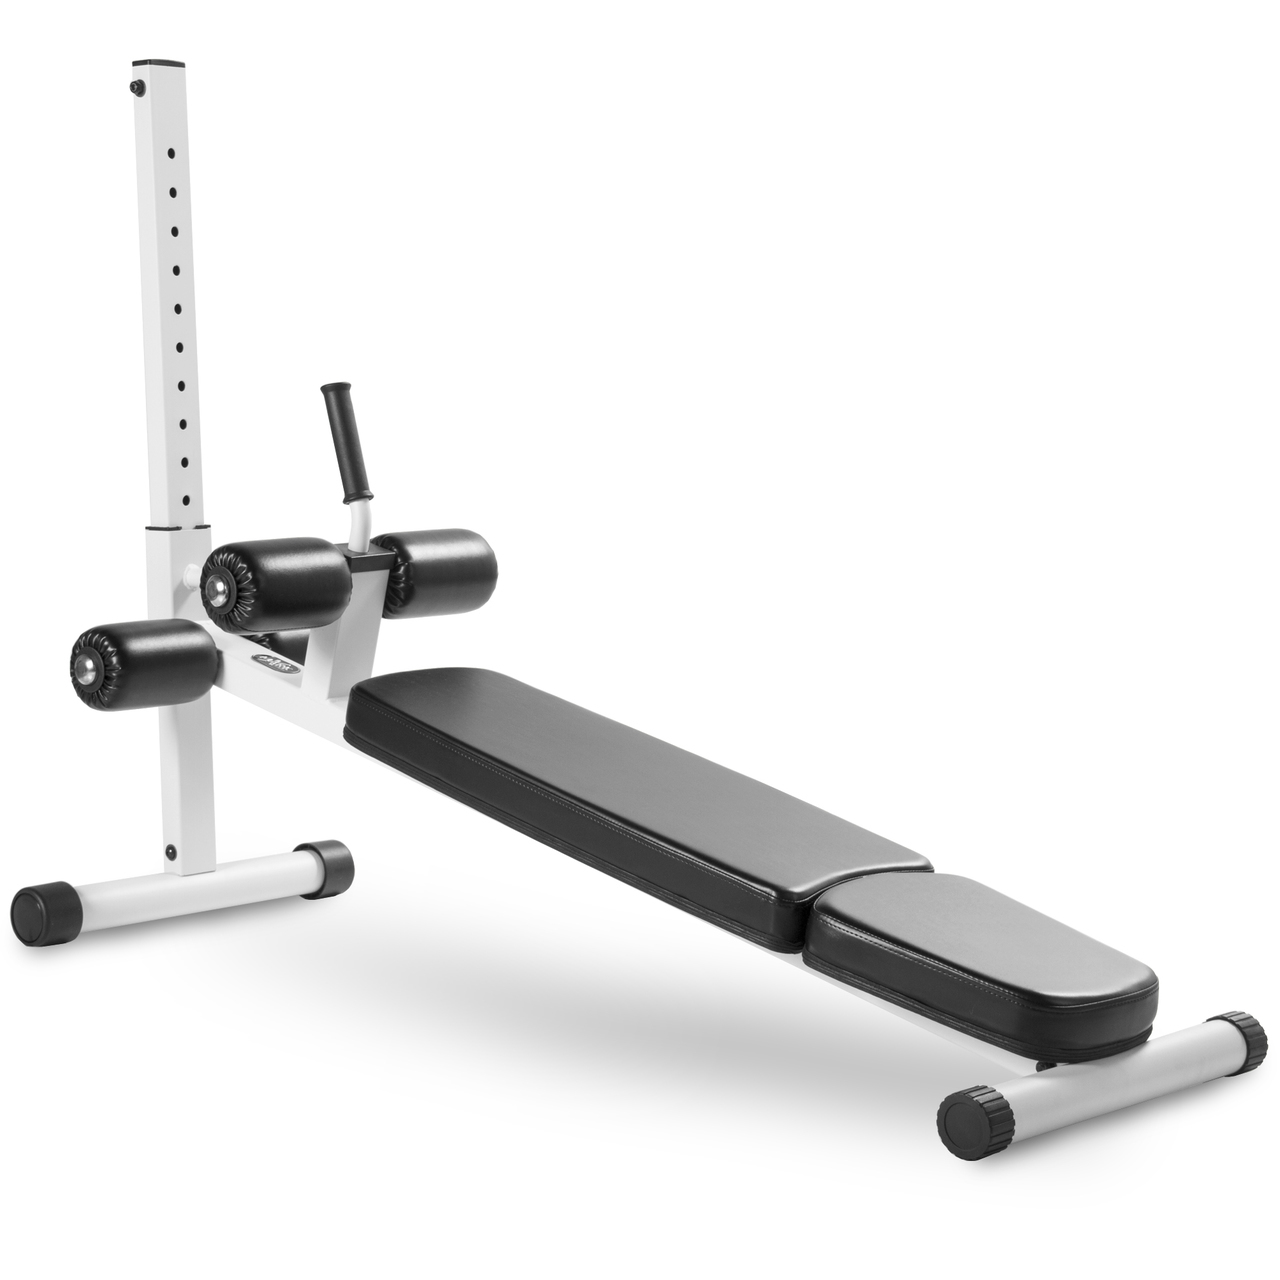 Xmark xm 7608 adjustable ab bench Abs bench